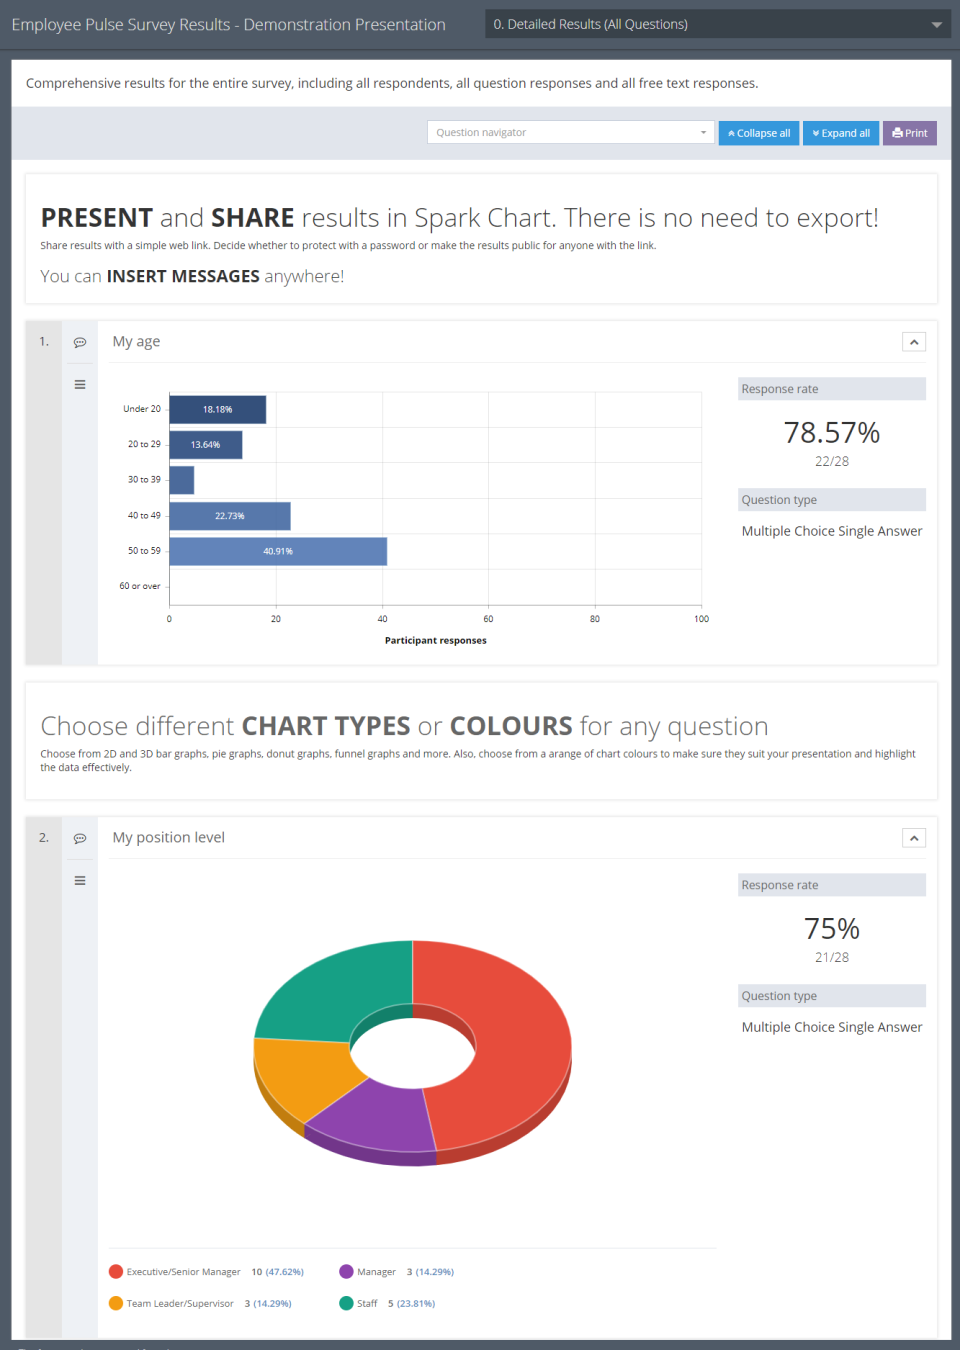 Users are able to create and share reports